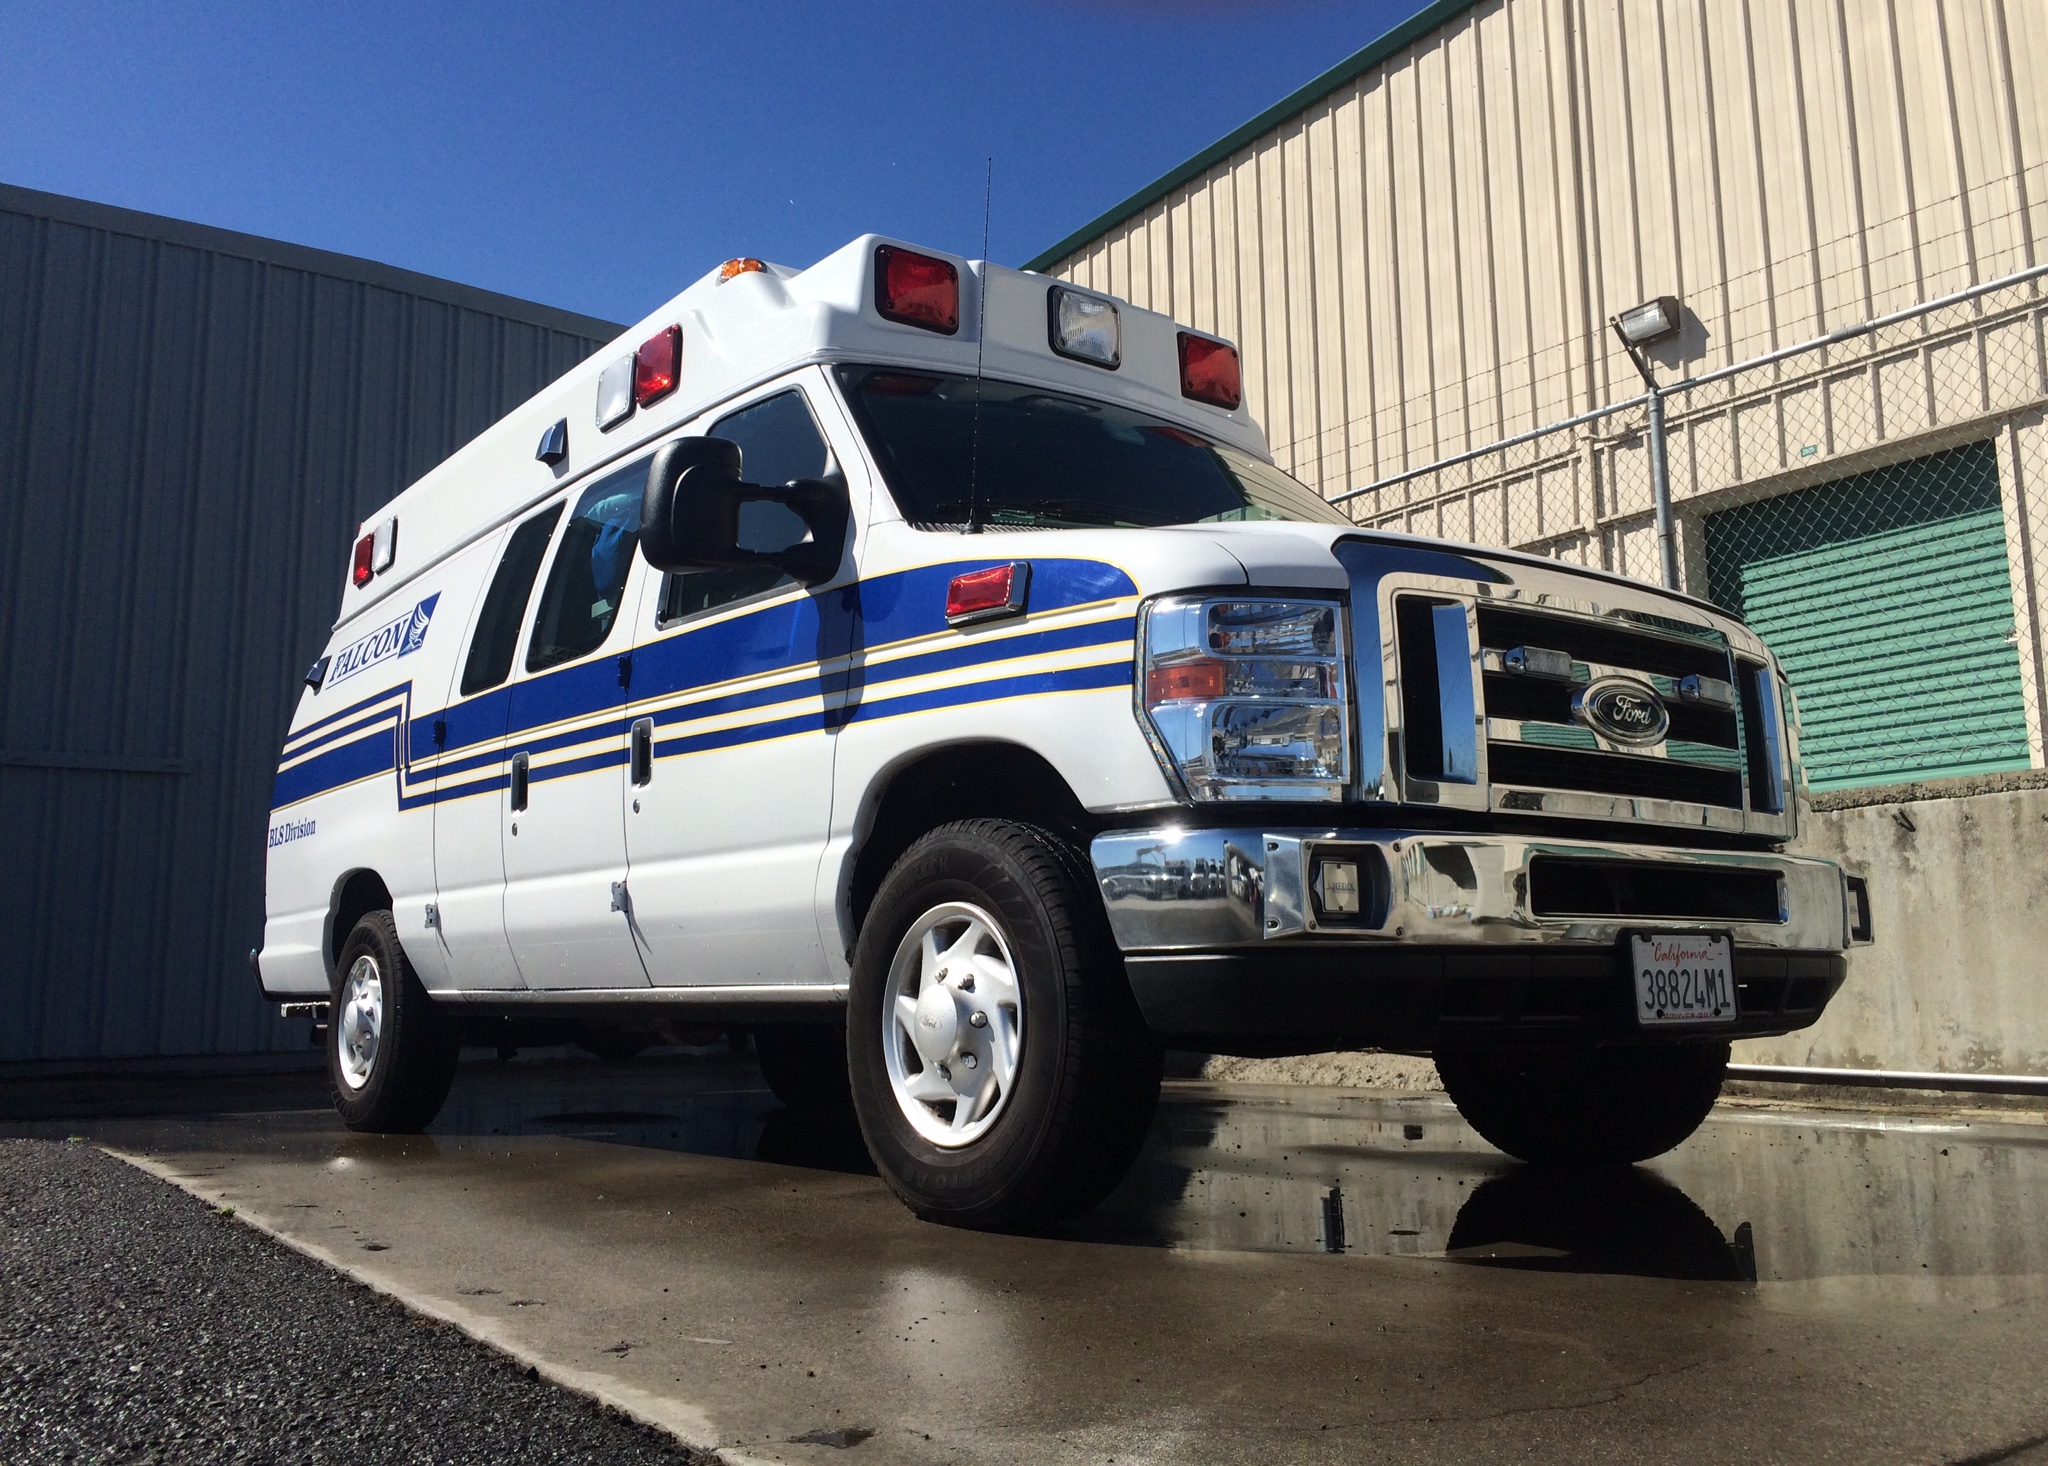 Falcon Ambulance in El Sobrante Ca. just added 5 brand new ambulances to their fleet.